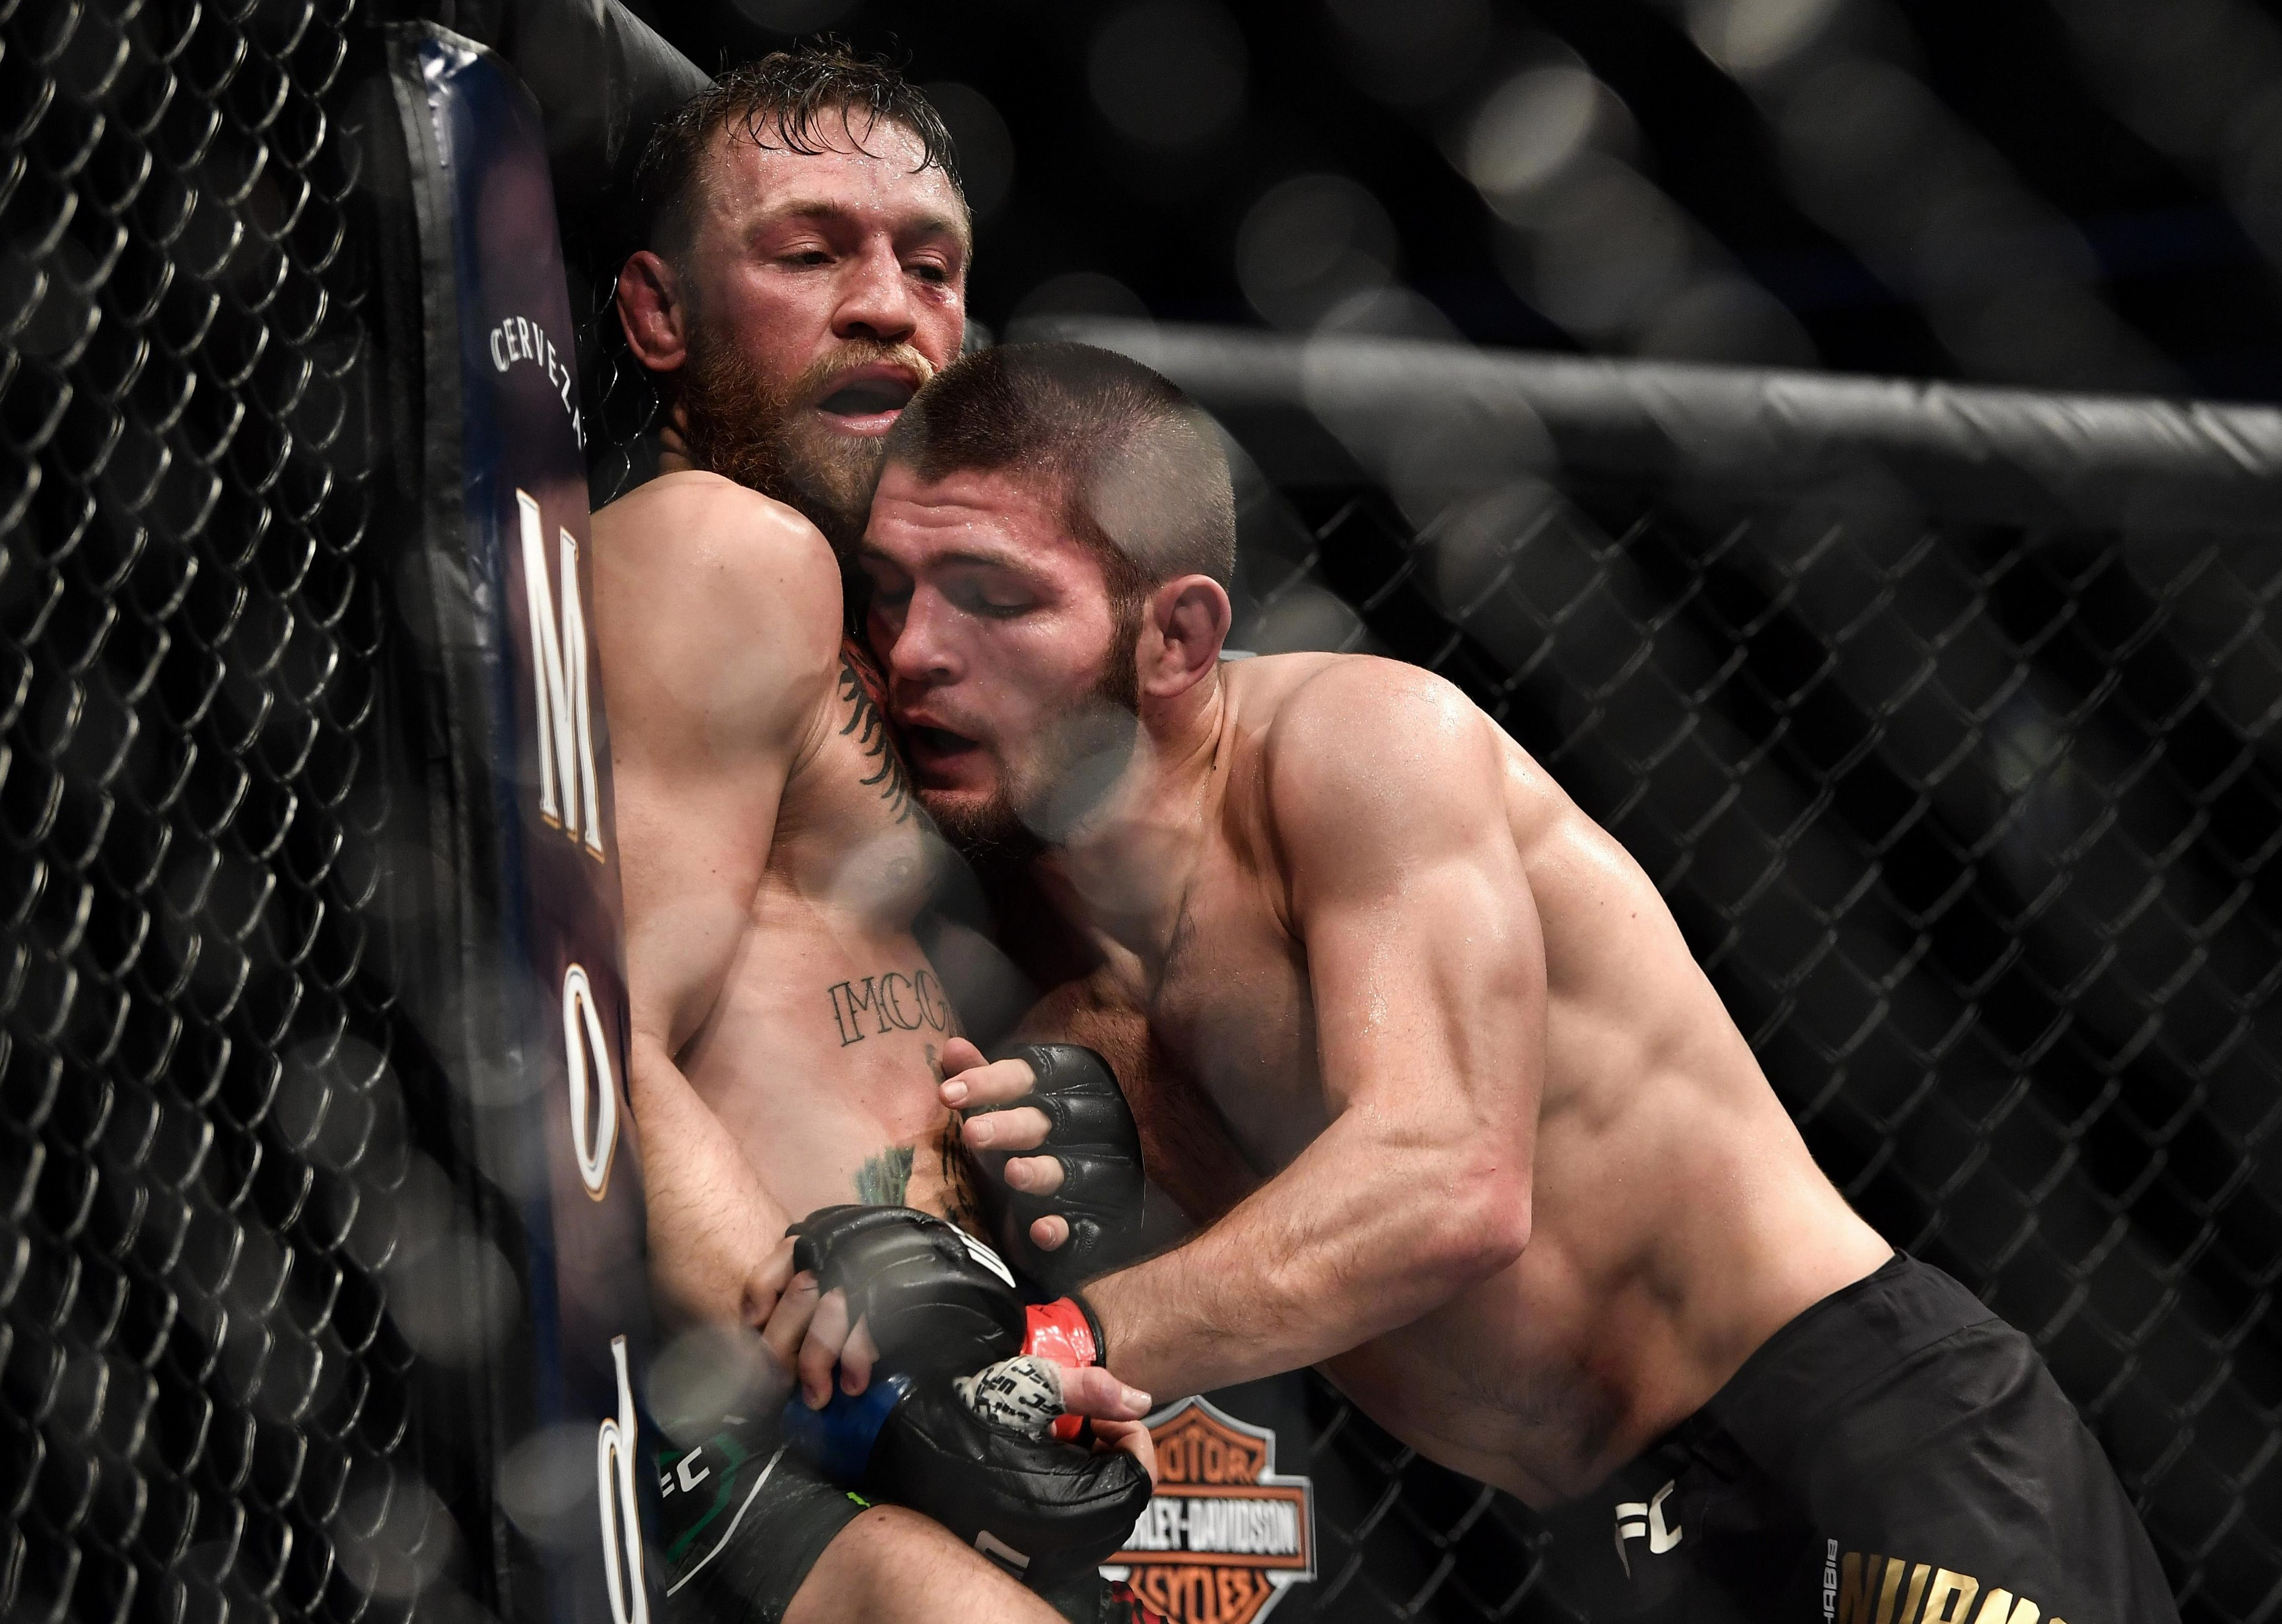 Conor McGregor and Khabib Nurmagomedov will discover their punishment on January 29